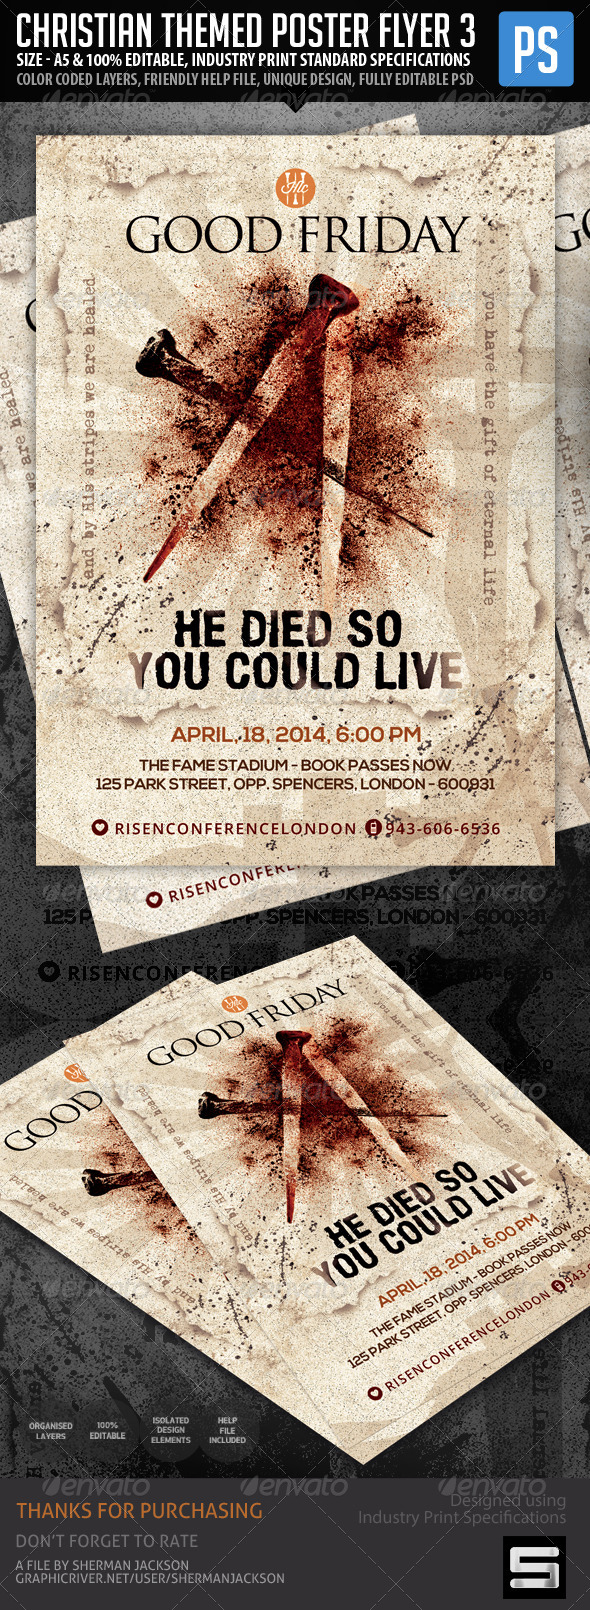 Church Christian Themed Poster Flyer Vol.3